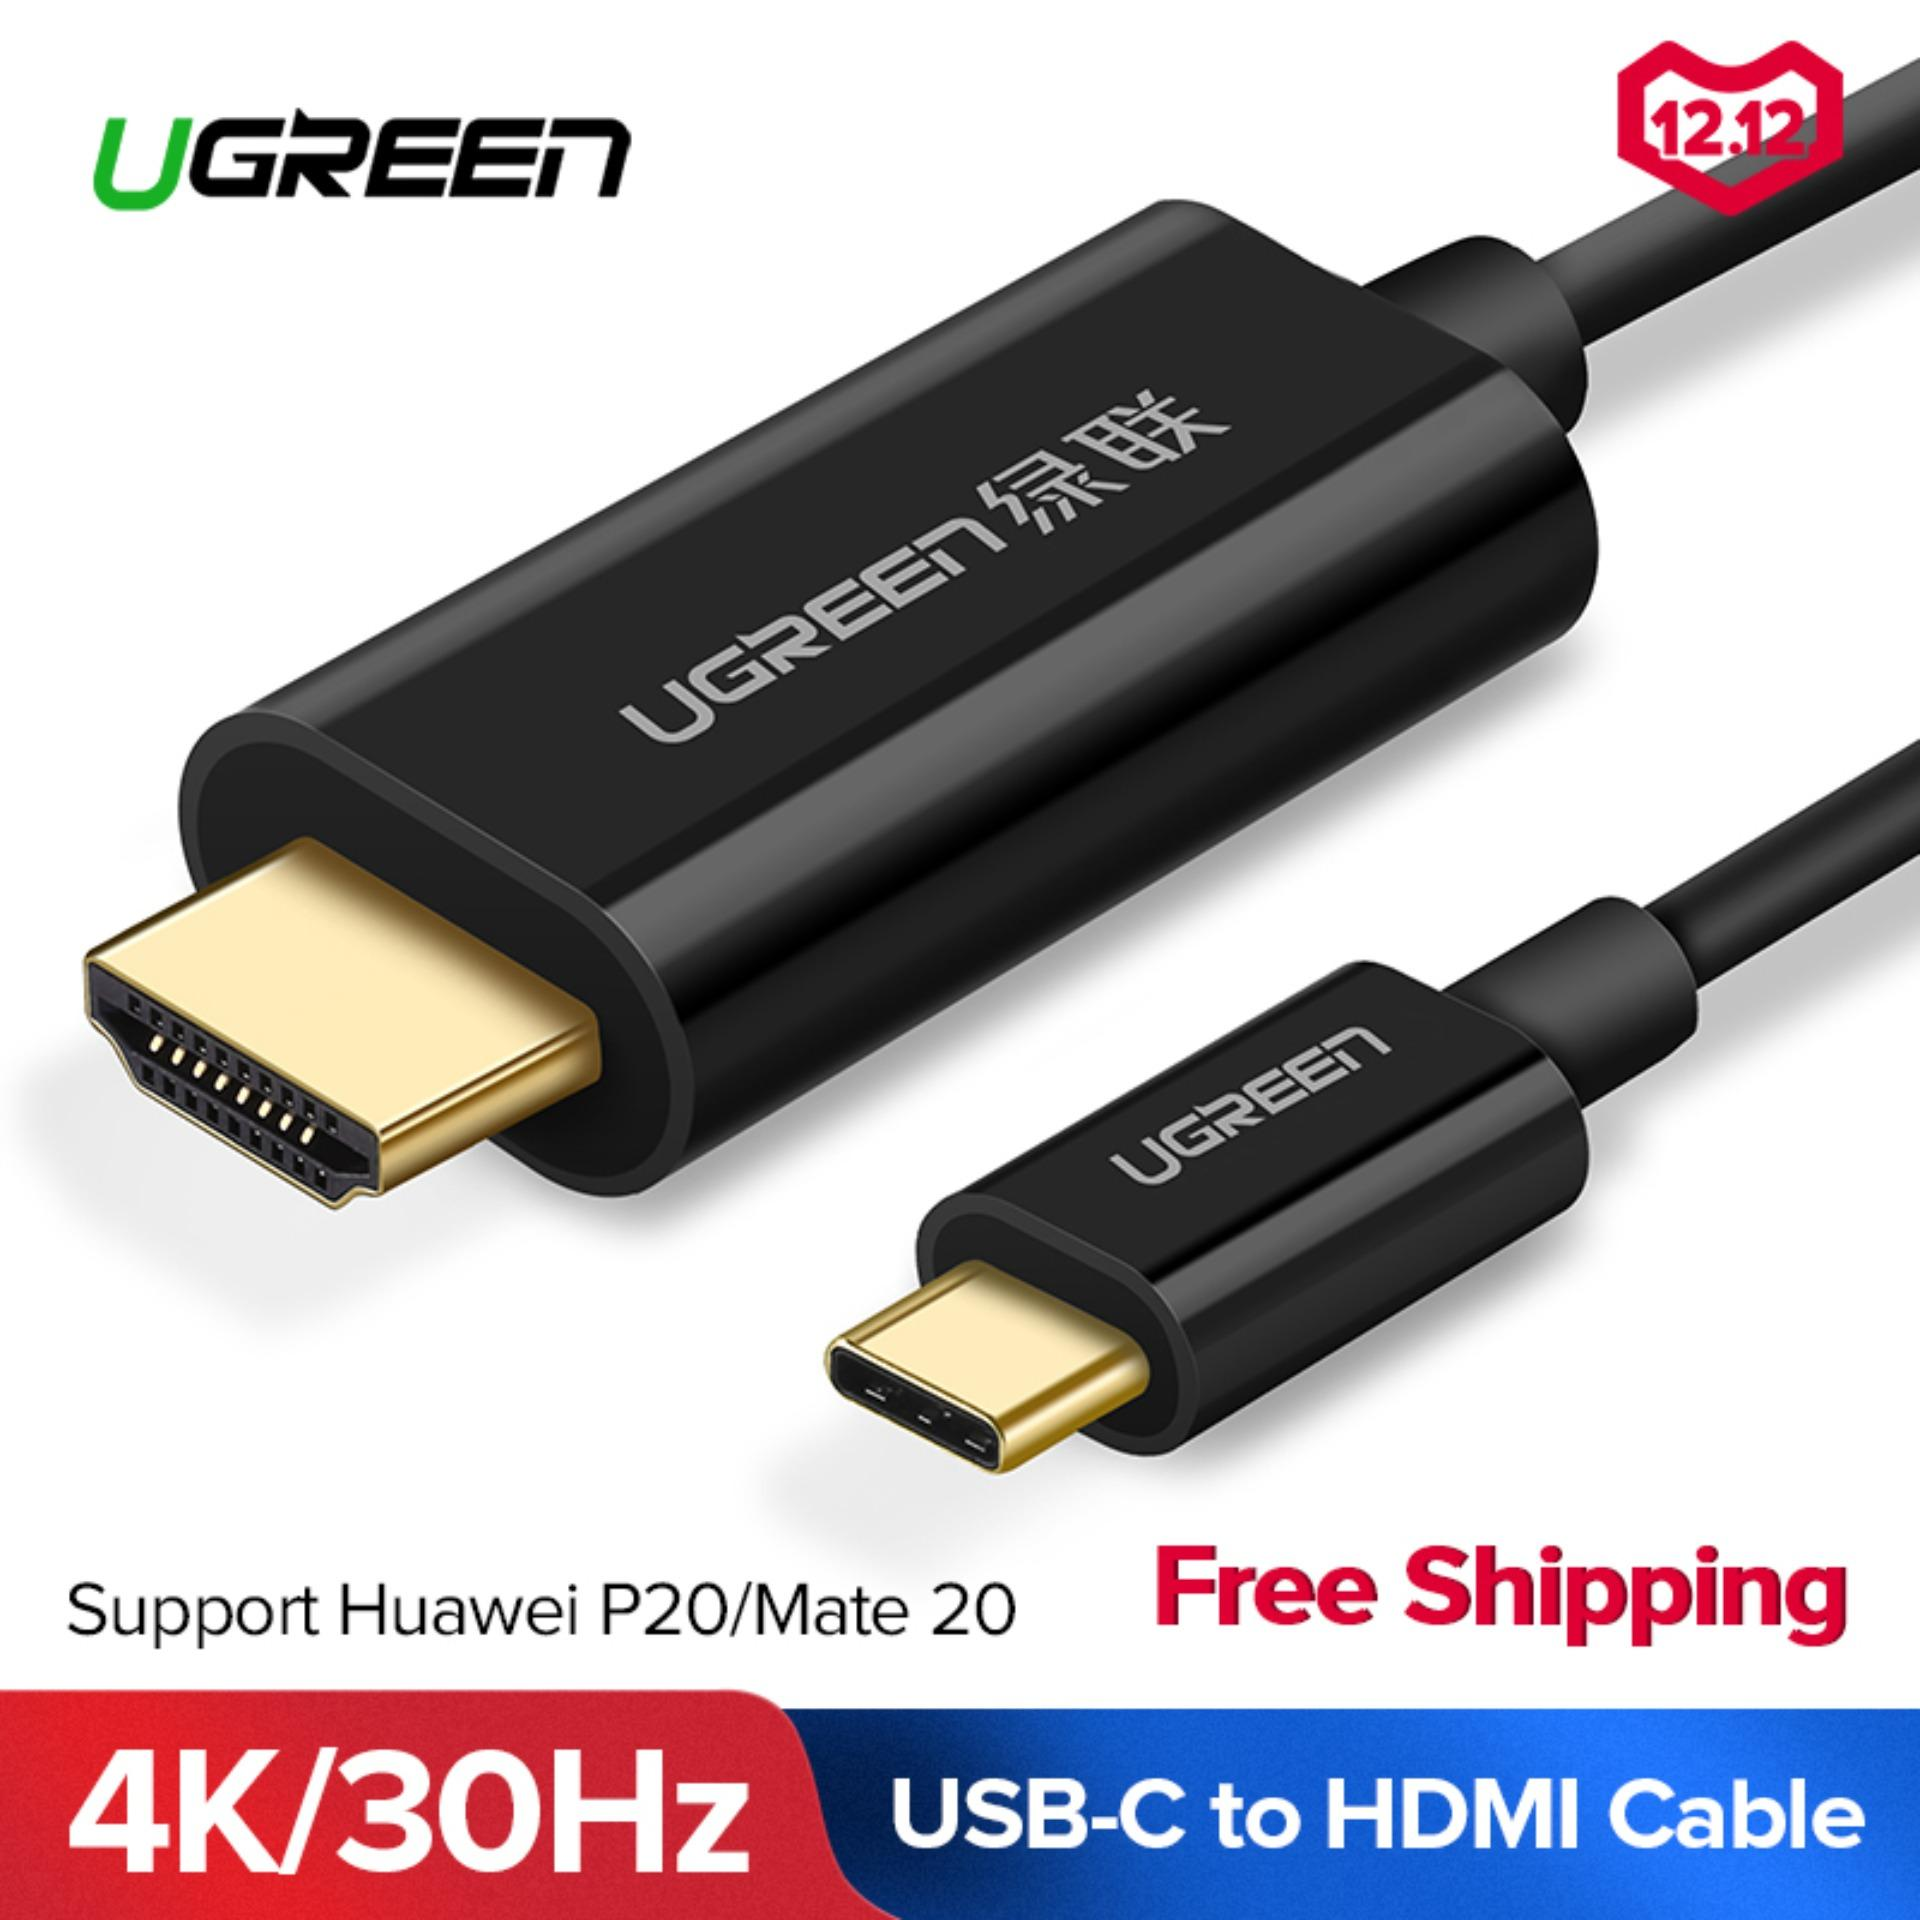 UGREEN 1.5Meter Type C HDMI Cable Adapter, USB Type C to HDMI Cord Support 4K for New Macbook, Macbook Pro 2016, Dell XPS 13, Samsung Galaxy S8 Plus,S9,Note 8,Huawei mate10,P20, Lenovo Yoga 900, Google Chromebook Pixel Black